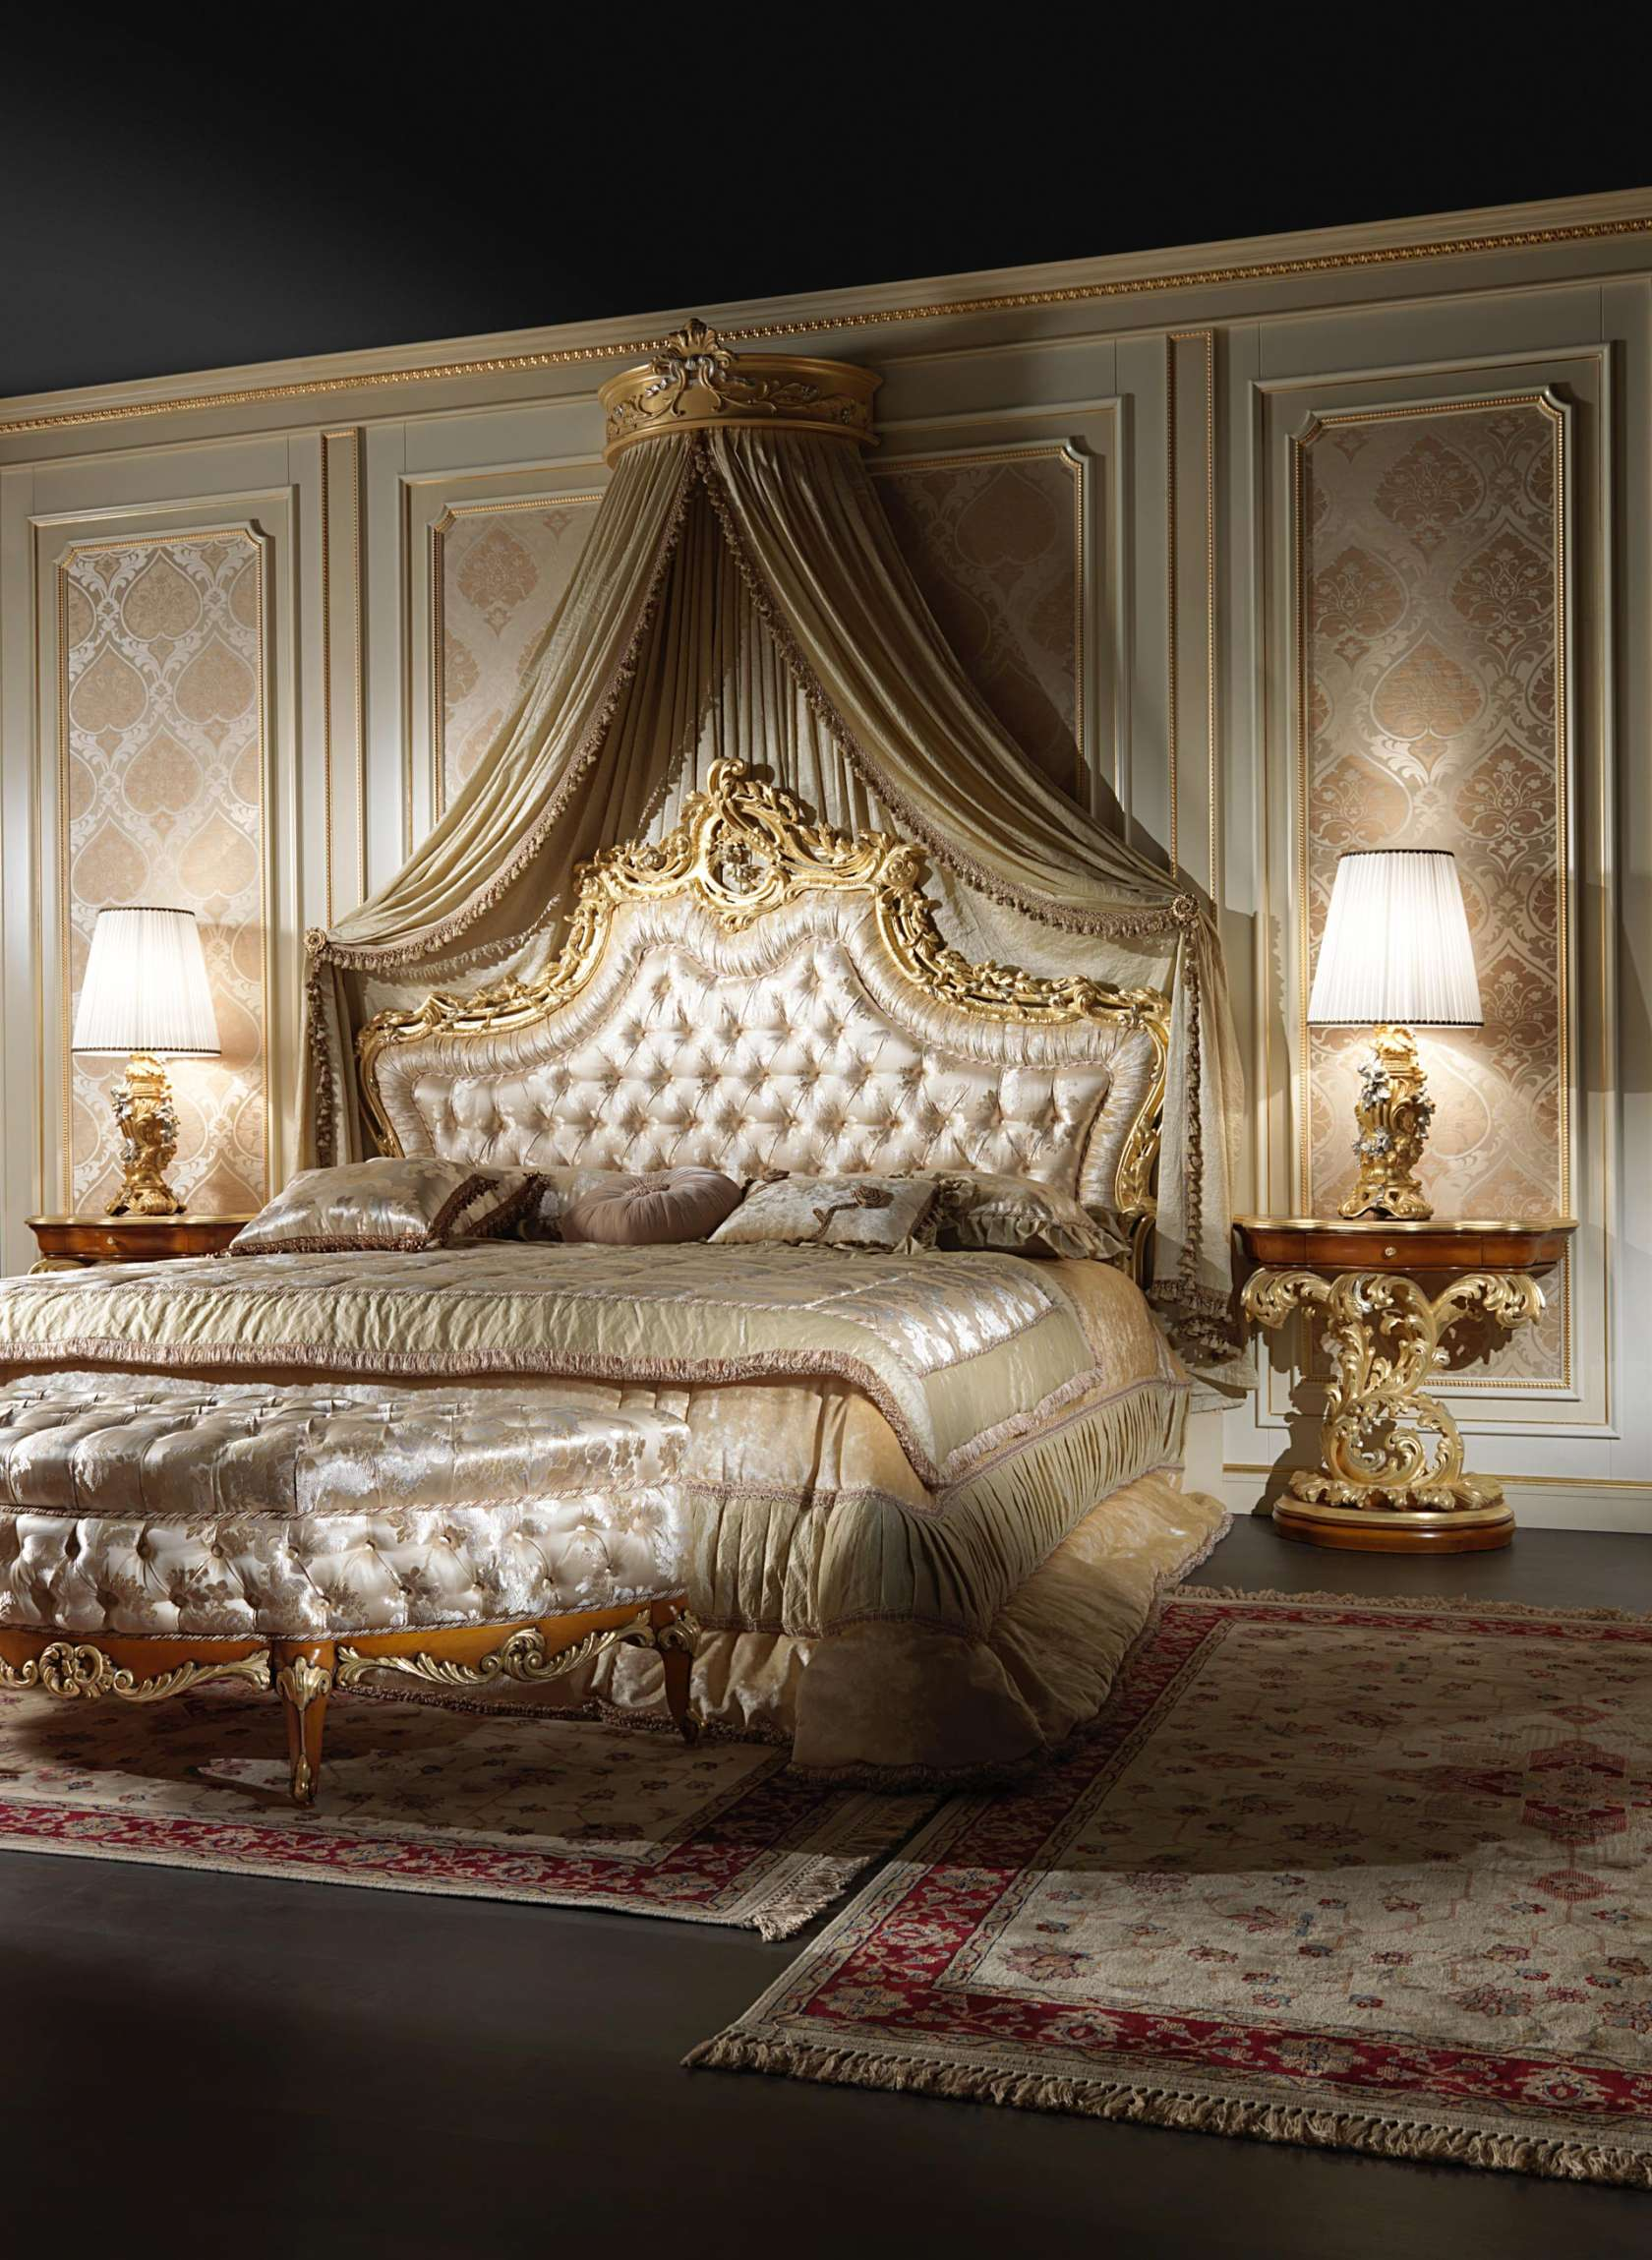 The canopy bed the models in the most beautiful wall - Contemporary canopy bed for a royal room ...